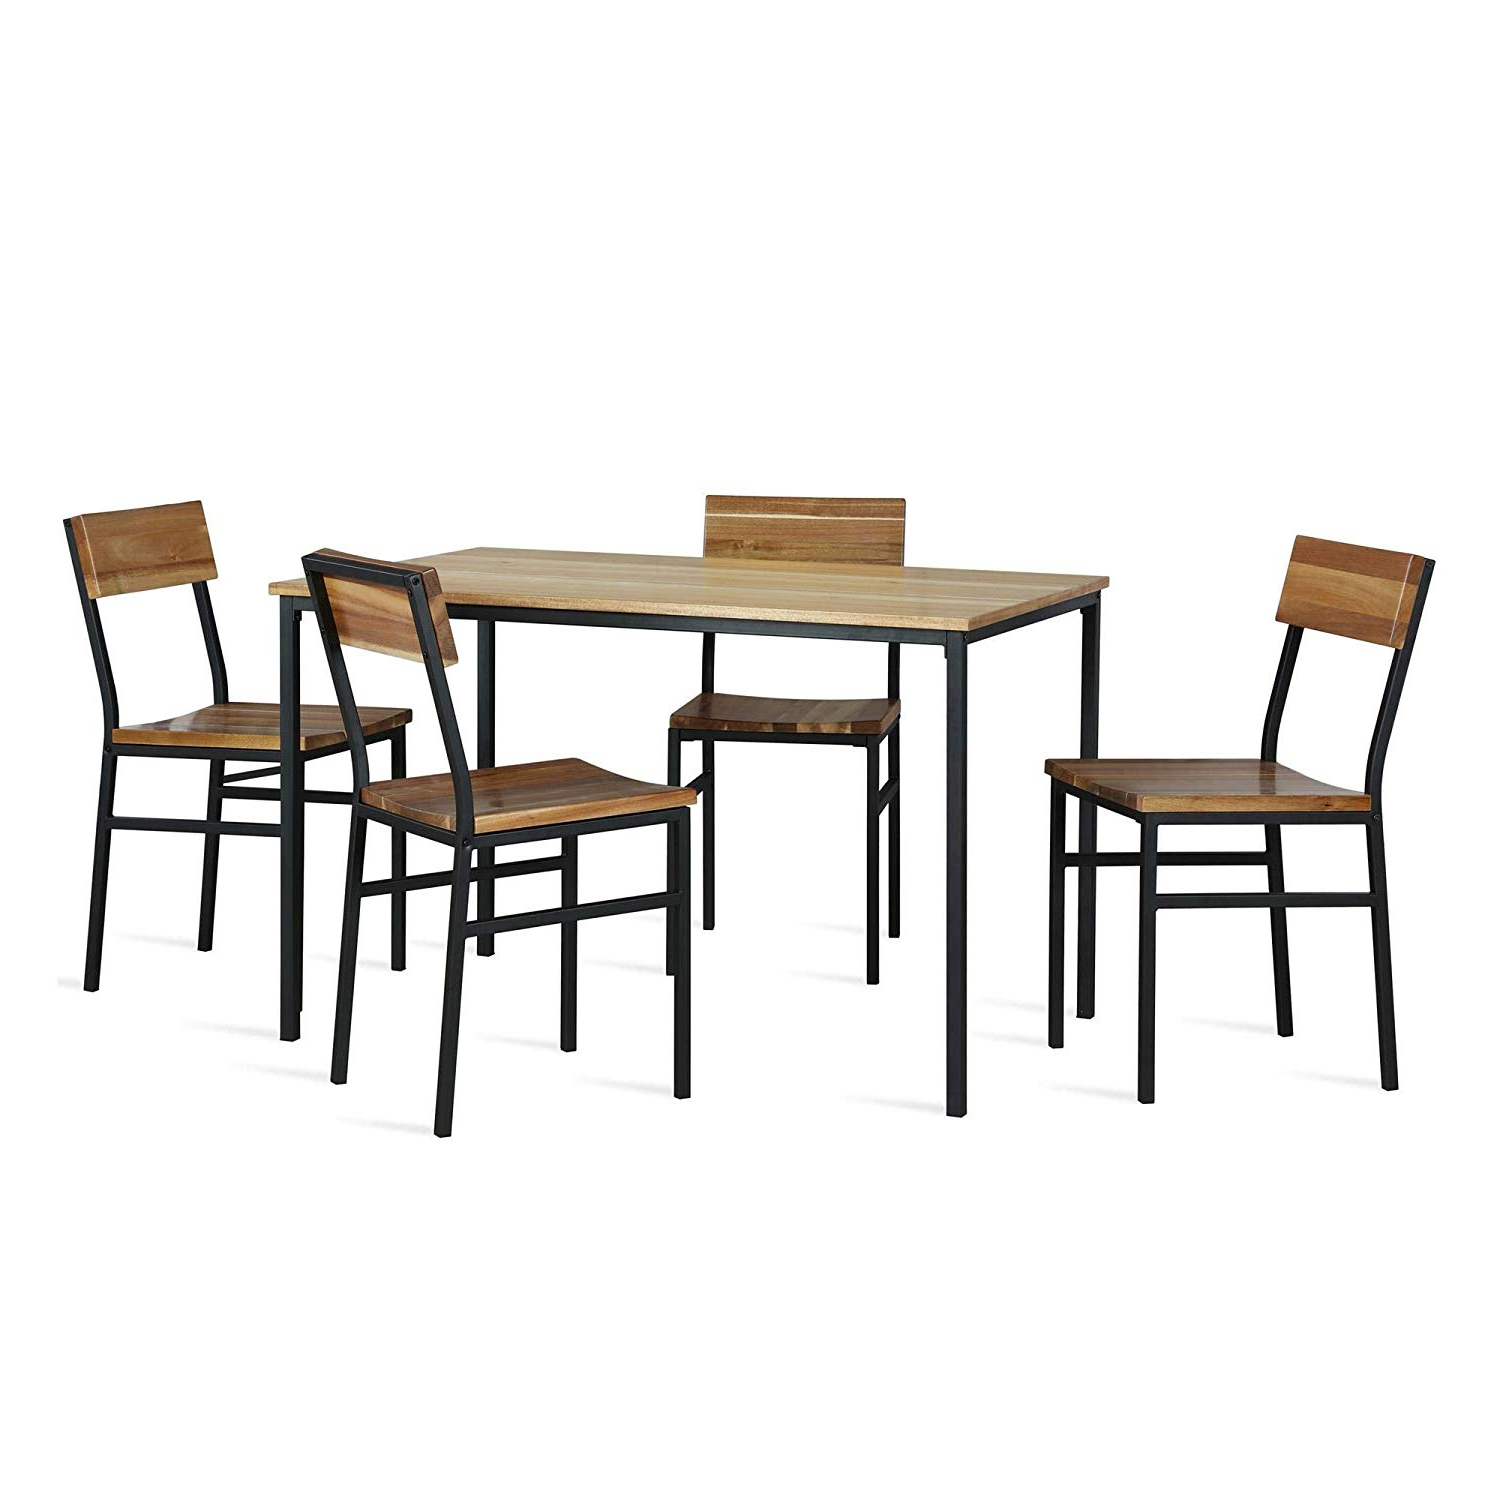 Linden Round Pedestal Dining Tables Within Preferred Novogratz Linden 5 Piece Wood And Metal, Natural, Gray Dining Set, (View 8 of 25)